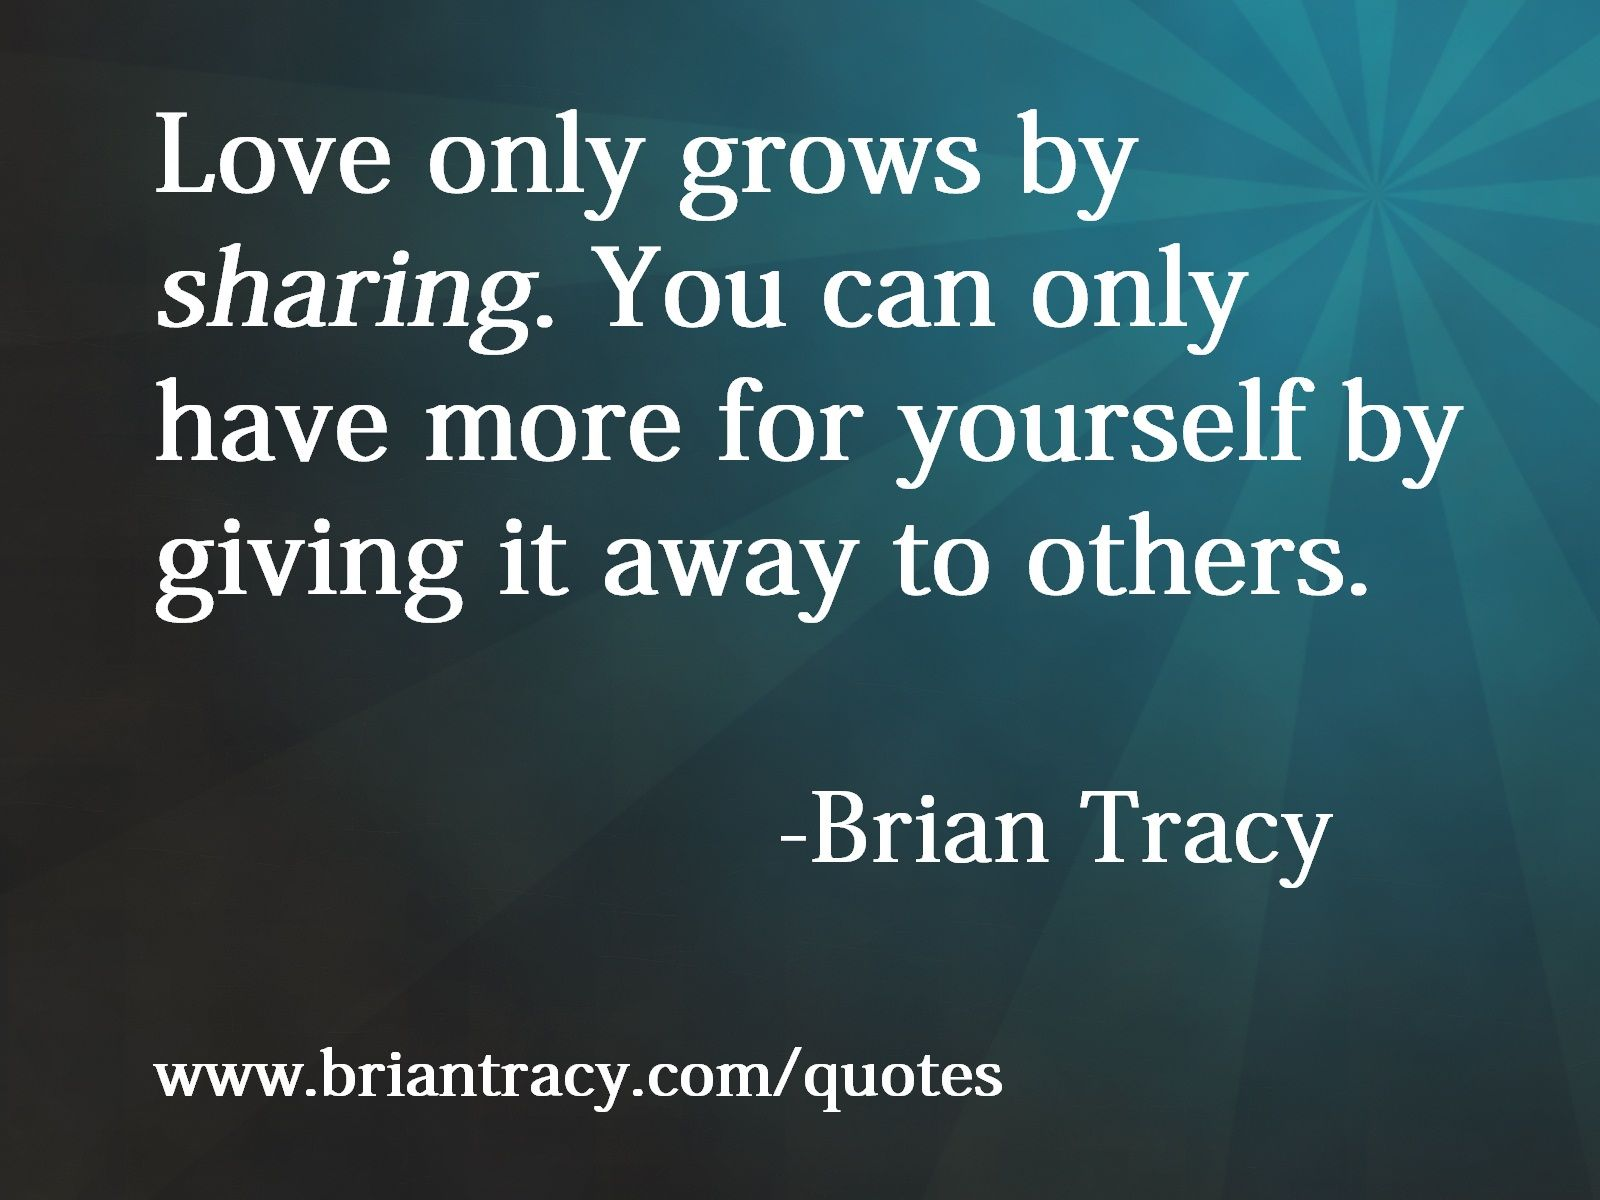 #BrianTracyQuote #Quotes www.briantracy.com/quotes